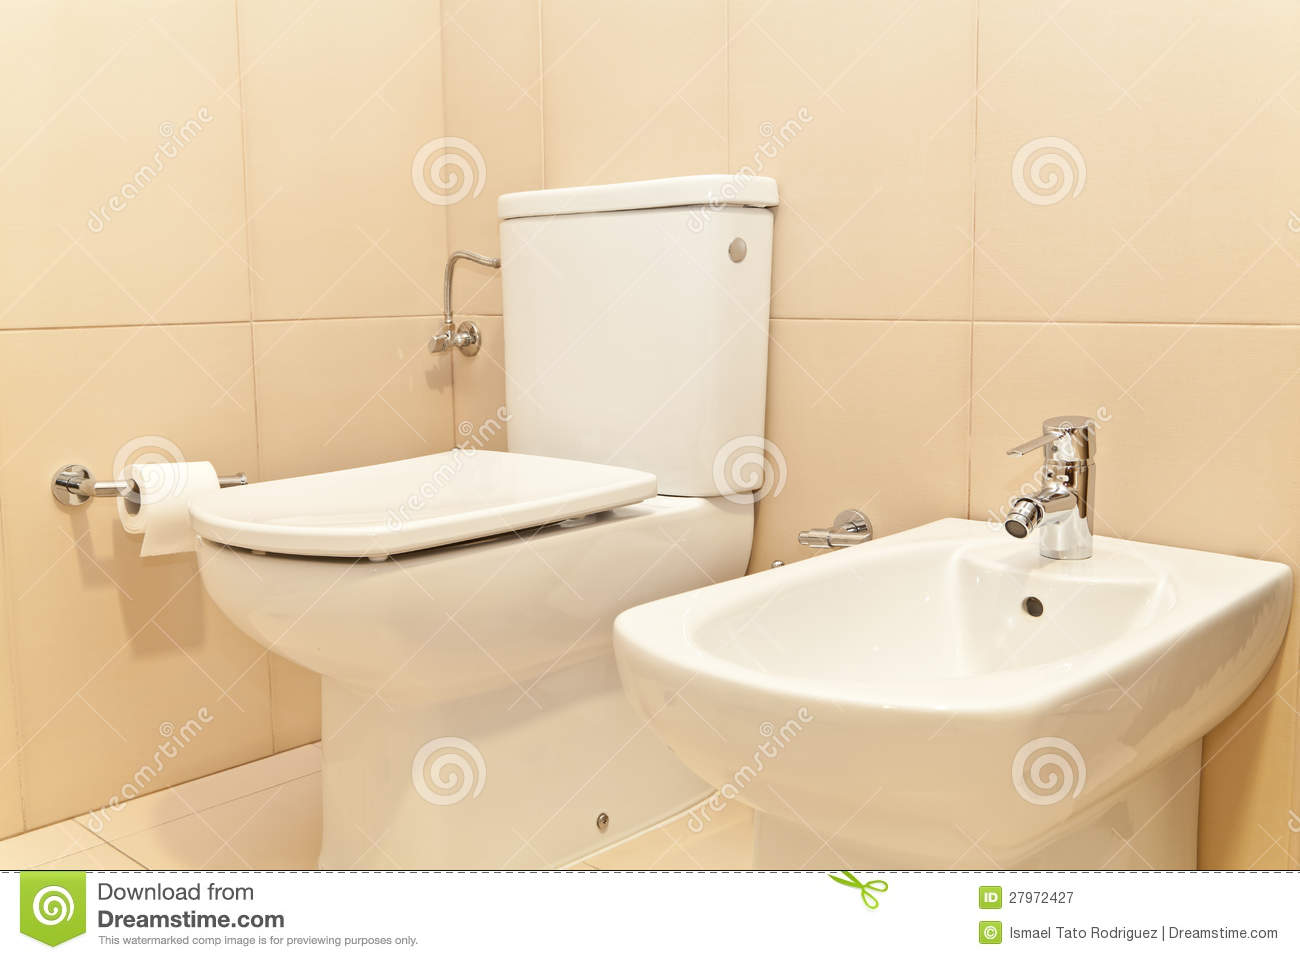 Toilet wc and bidet royalty free stock photography image 27972427